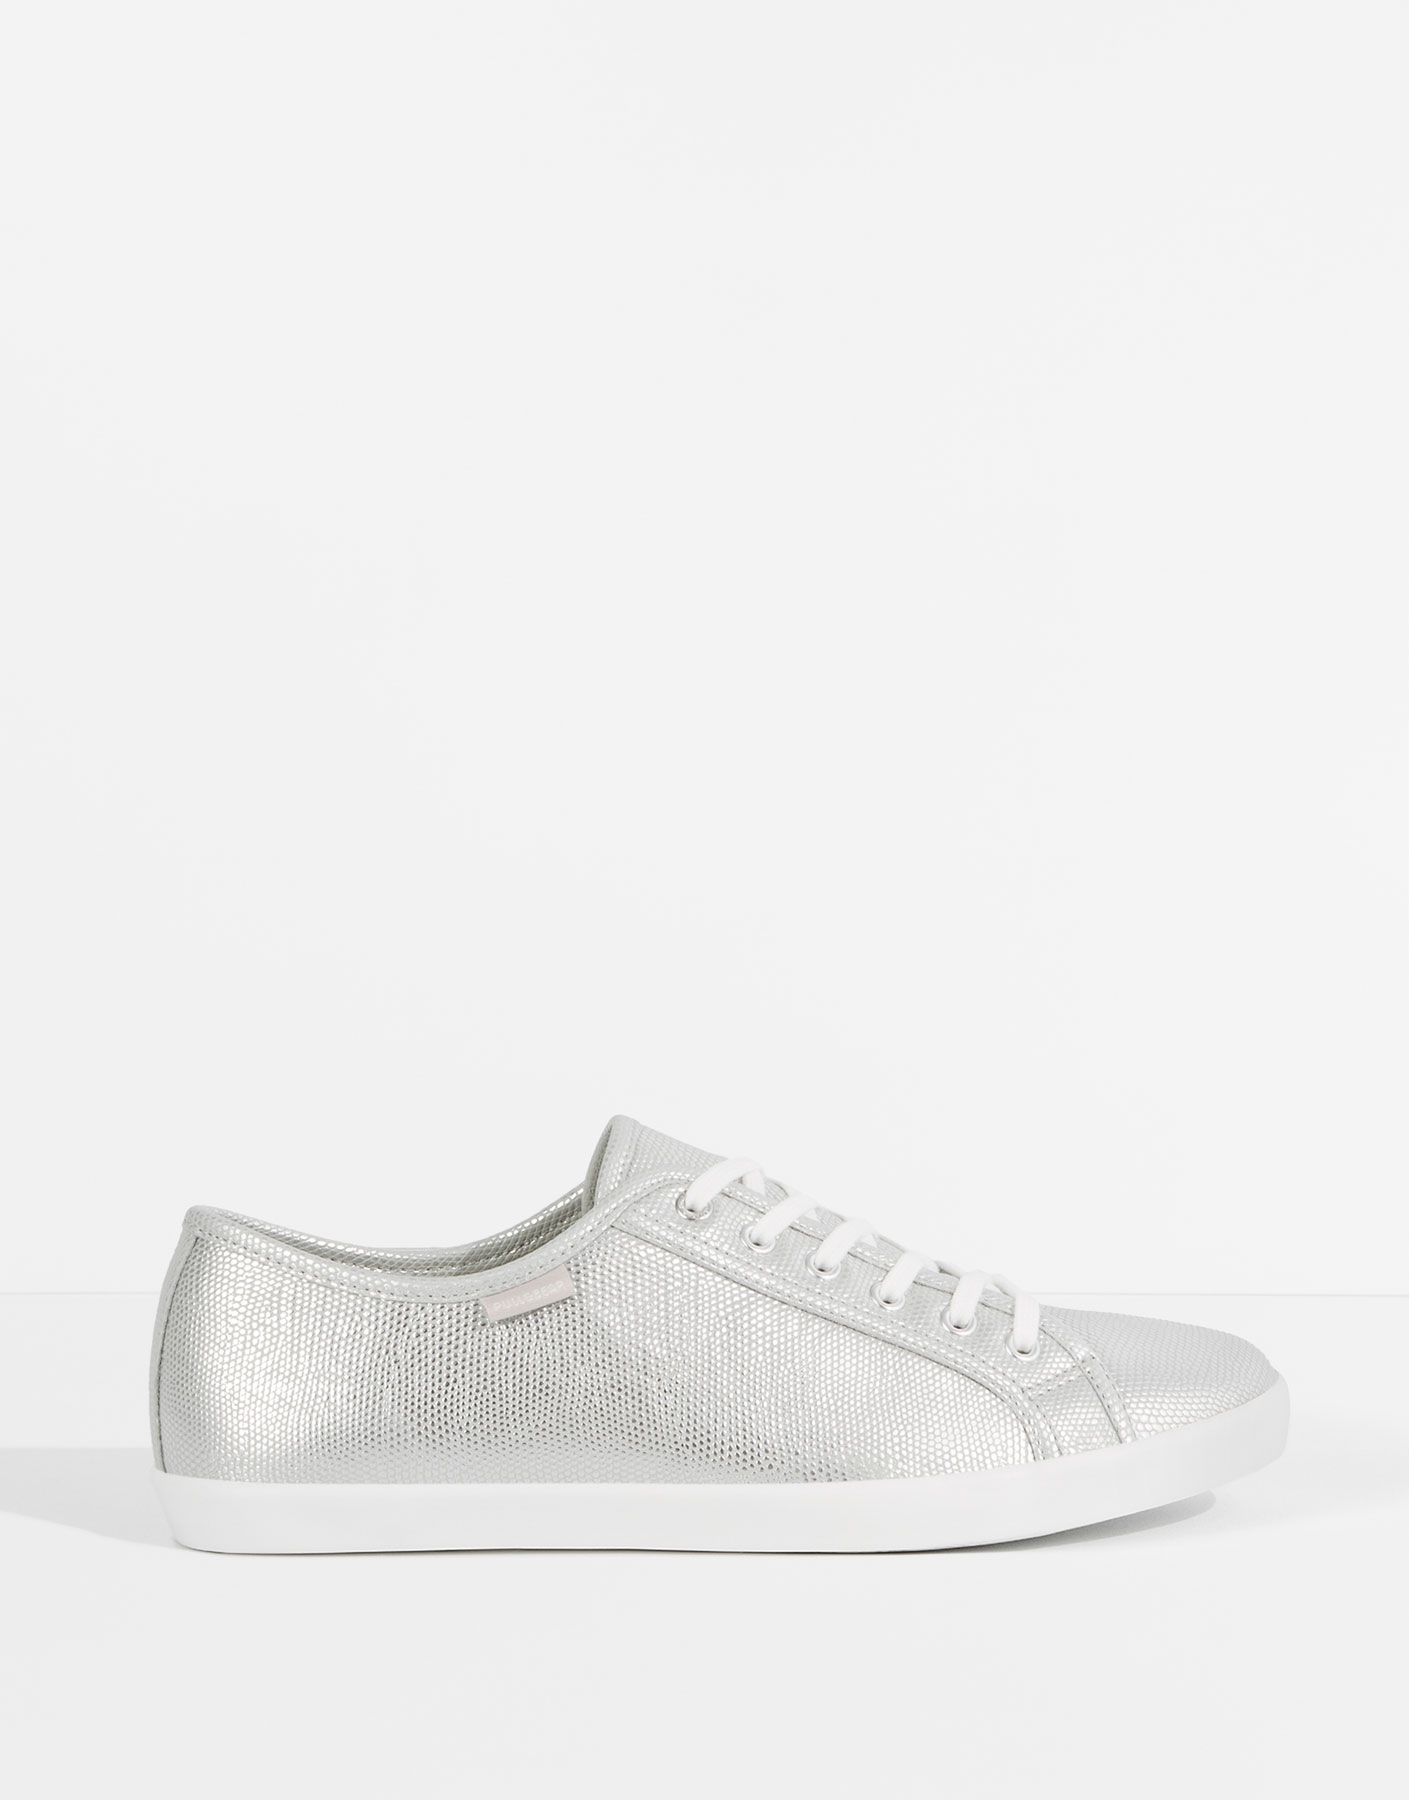 Silver-toned sneakers